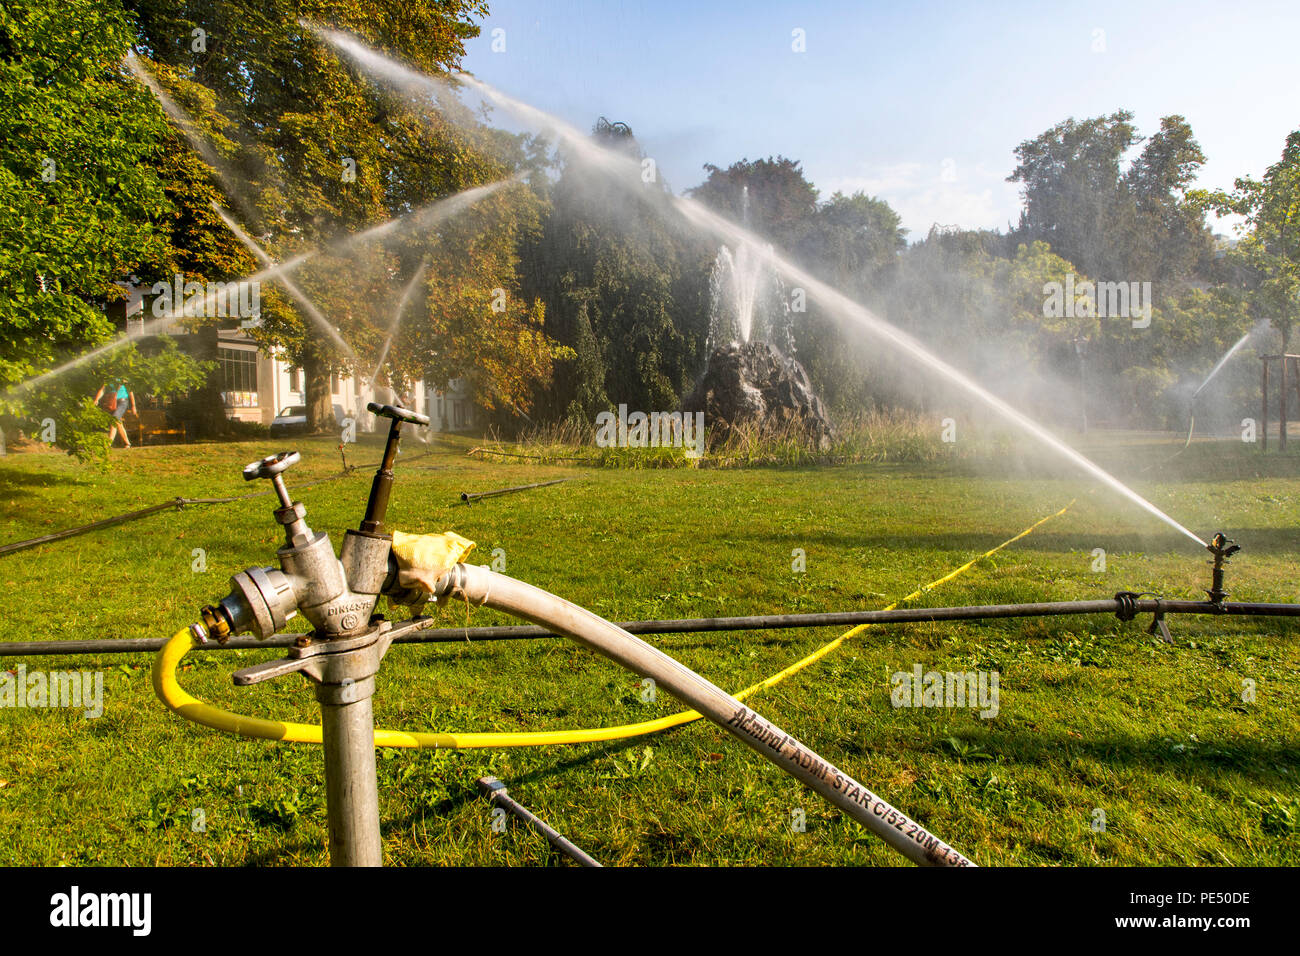 Baden-Baden, Lichtentaler Allee park, watering in the morning, irrigation of the green areas, while the whole of Germany is moaning under the summer h - Stock Image